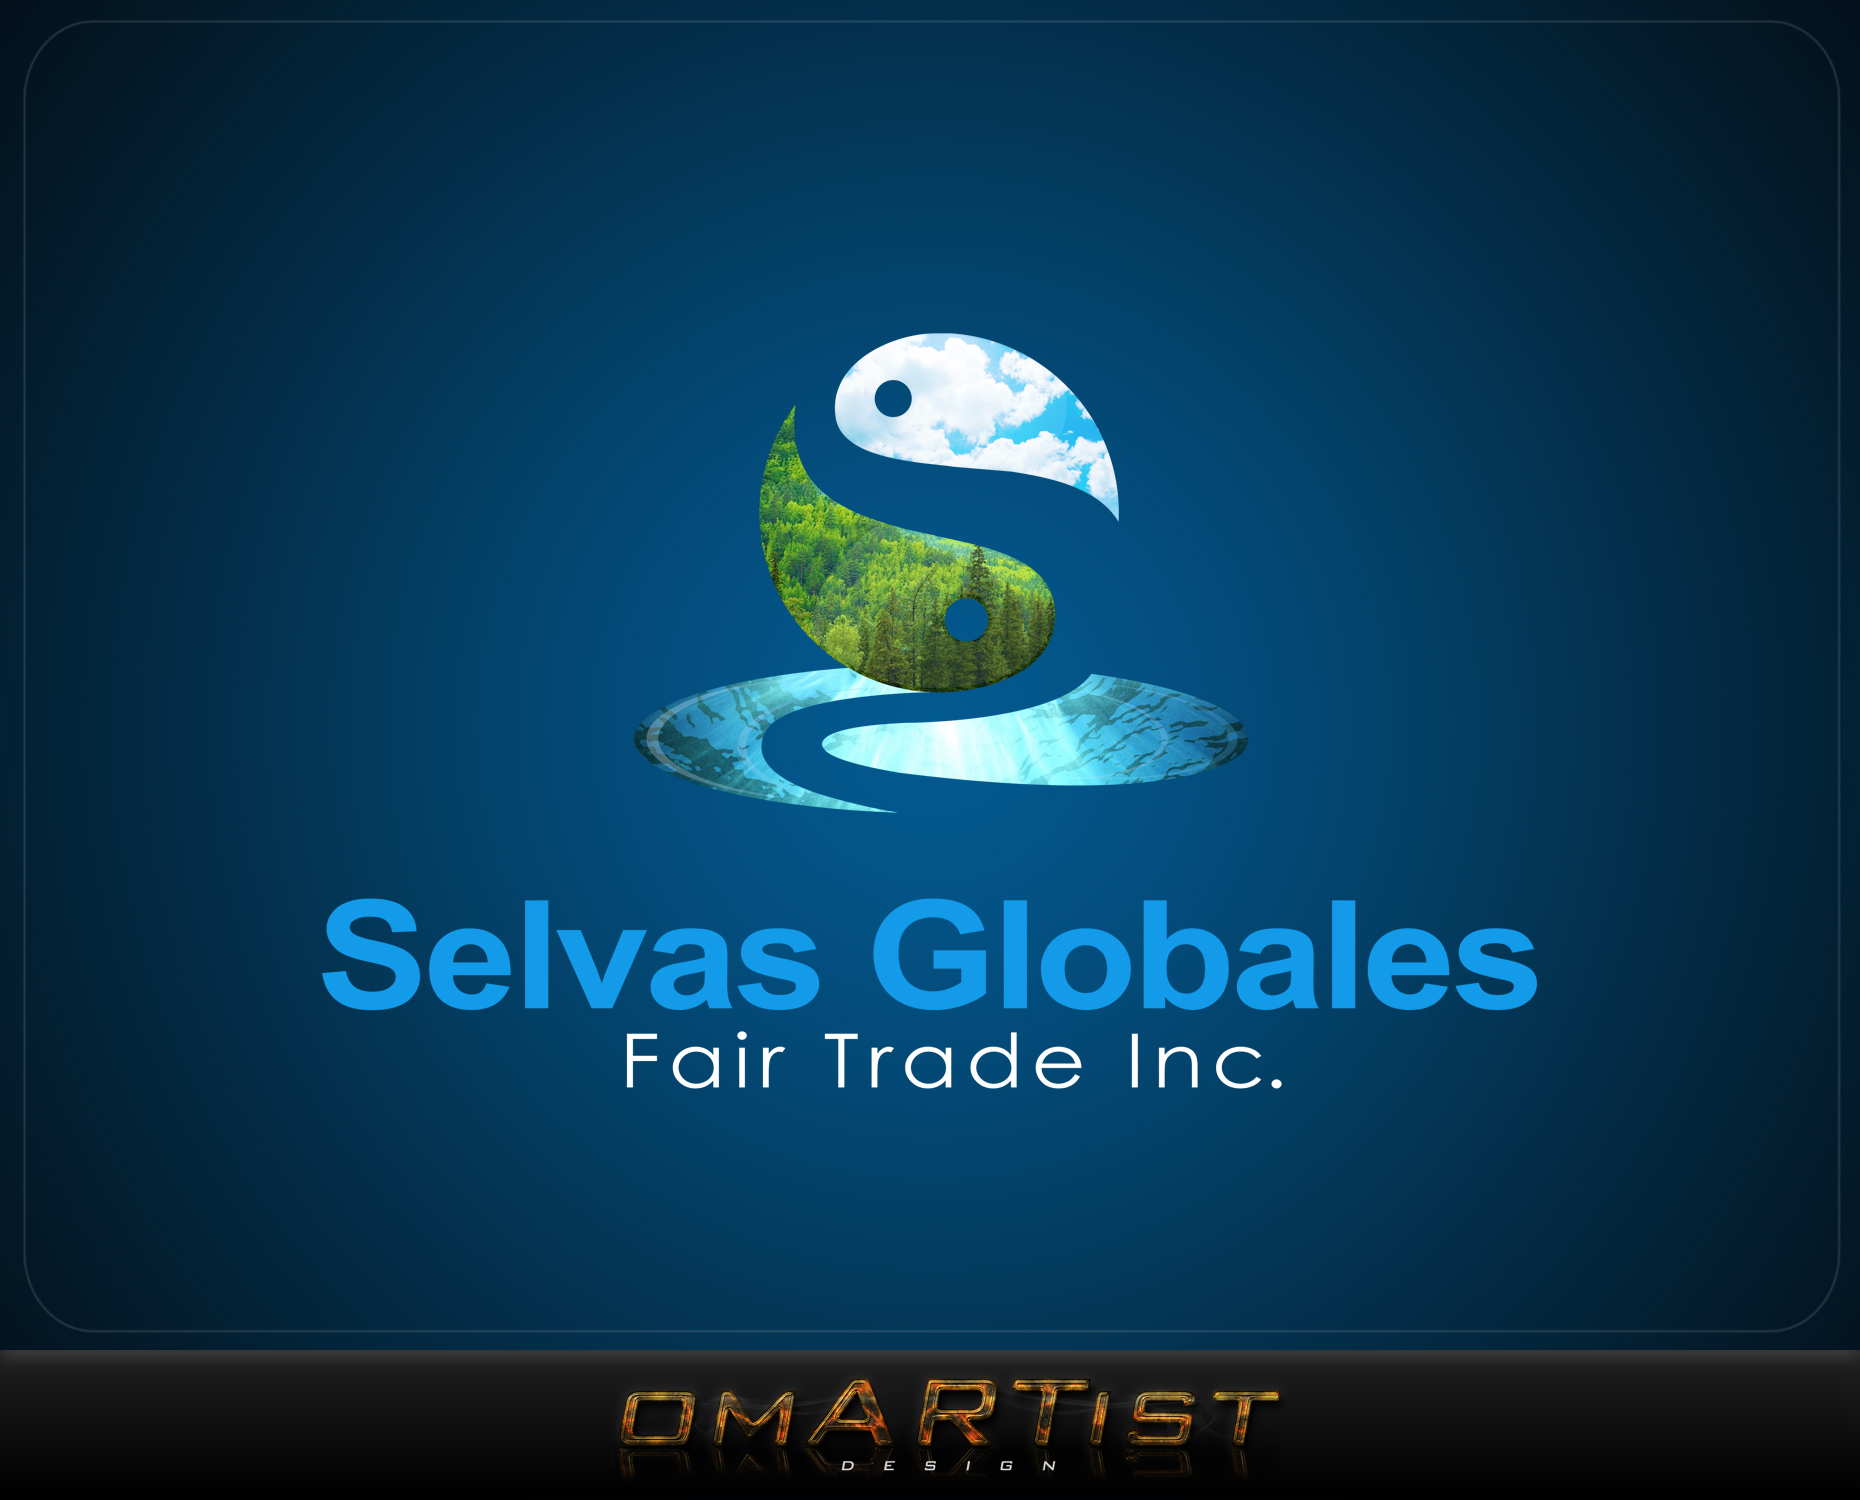 Logo Design by omARTist - Entry No. 110 in the Logo Design Contest Captivating Logo Design for Selvas Globales Fair Trade Inc..